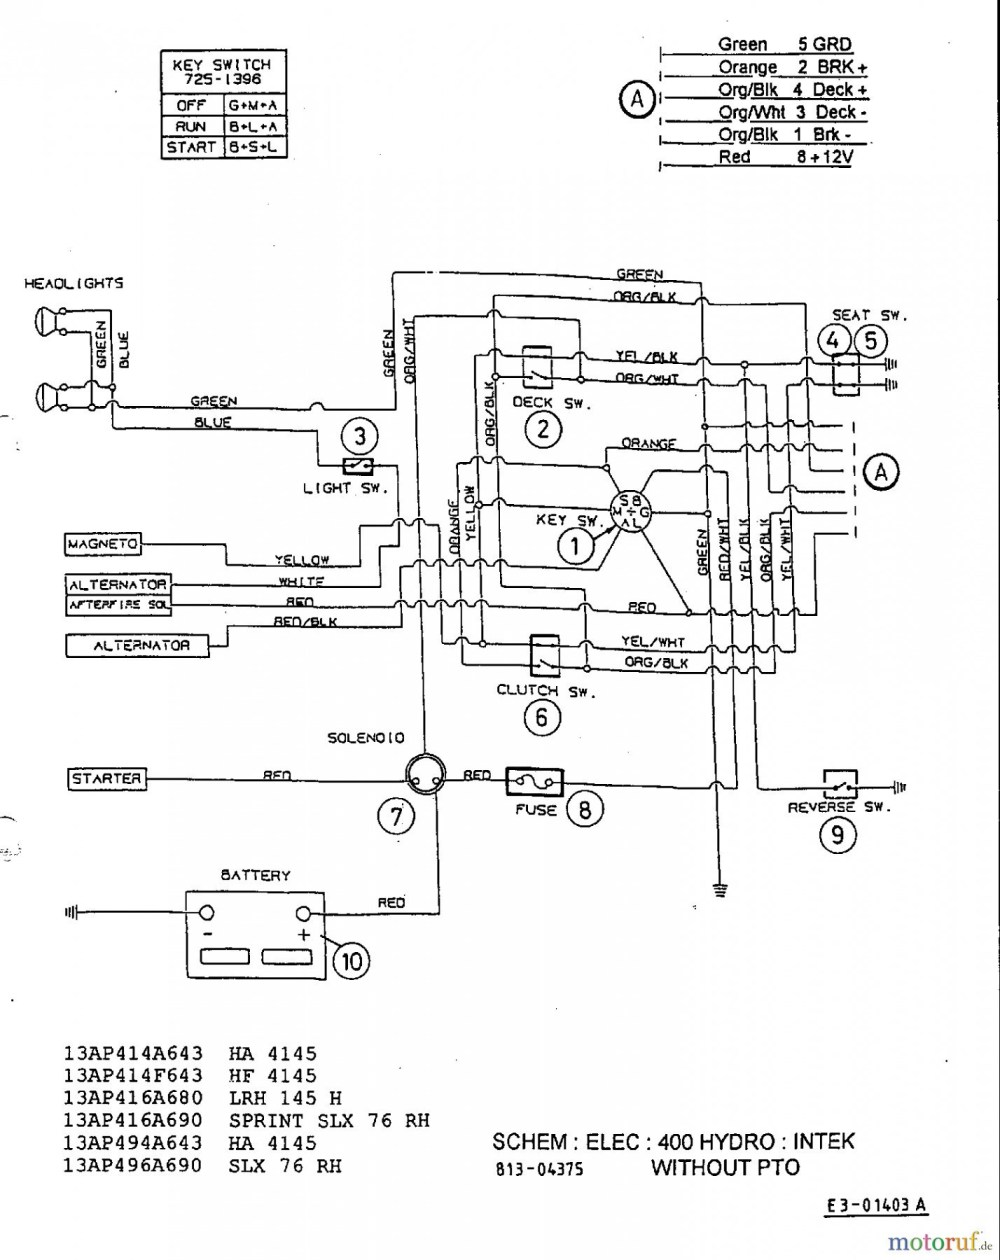 medium resolution of mtd wireing harness diagram wiring diagram paper agway lawn mower wiring diagram